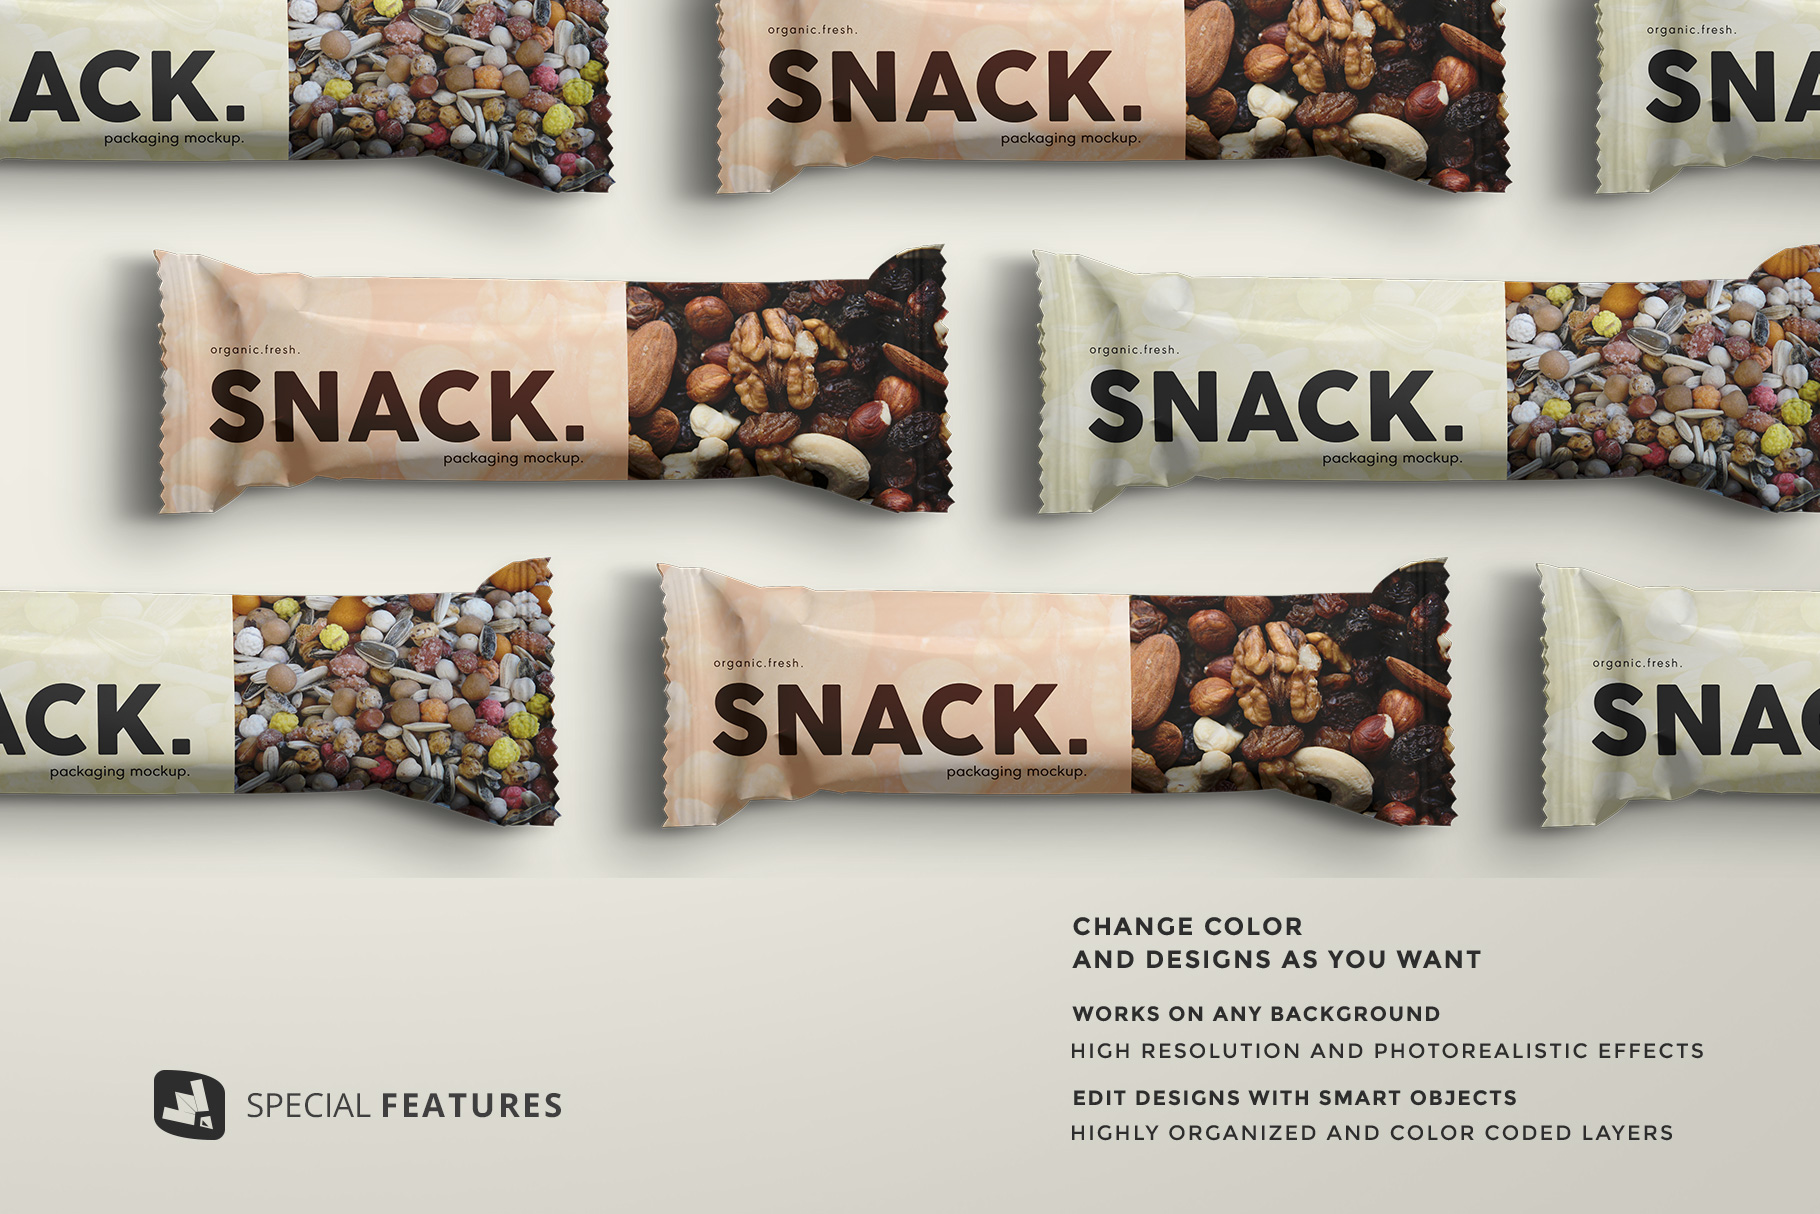 special features of the top view organic snack bar packaging mockup